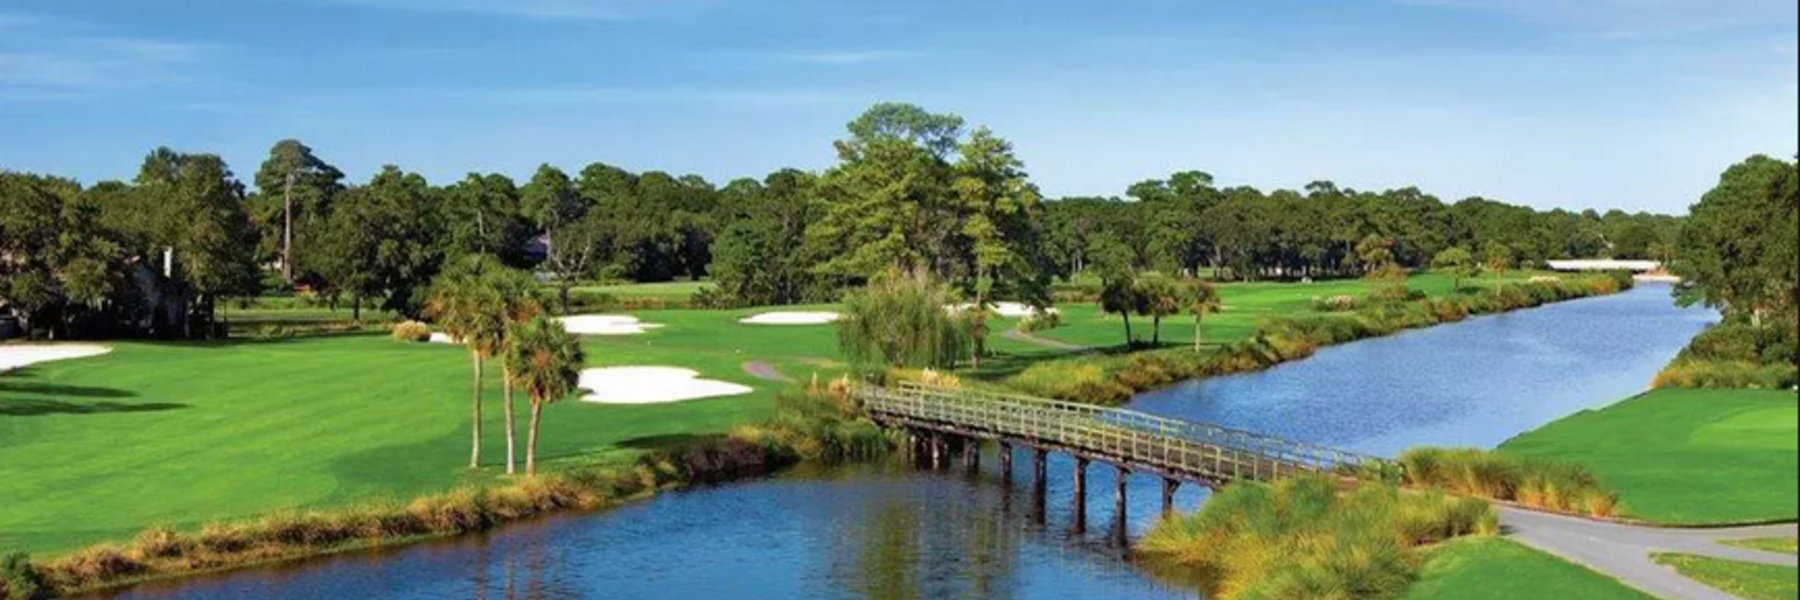 Golf Vacation Package - Stay at the Omni and Play all 3 Palmetto Dunes Courses this Spring for $199/day!